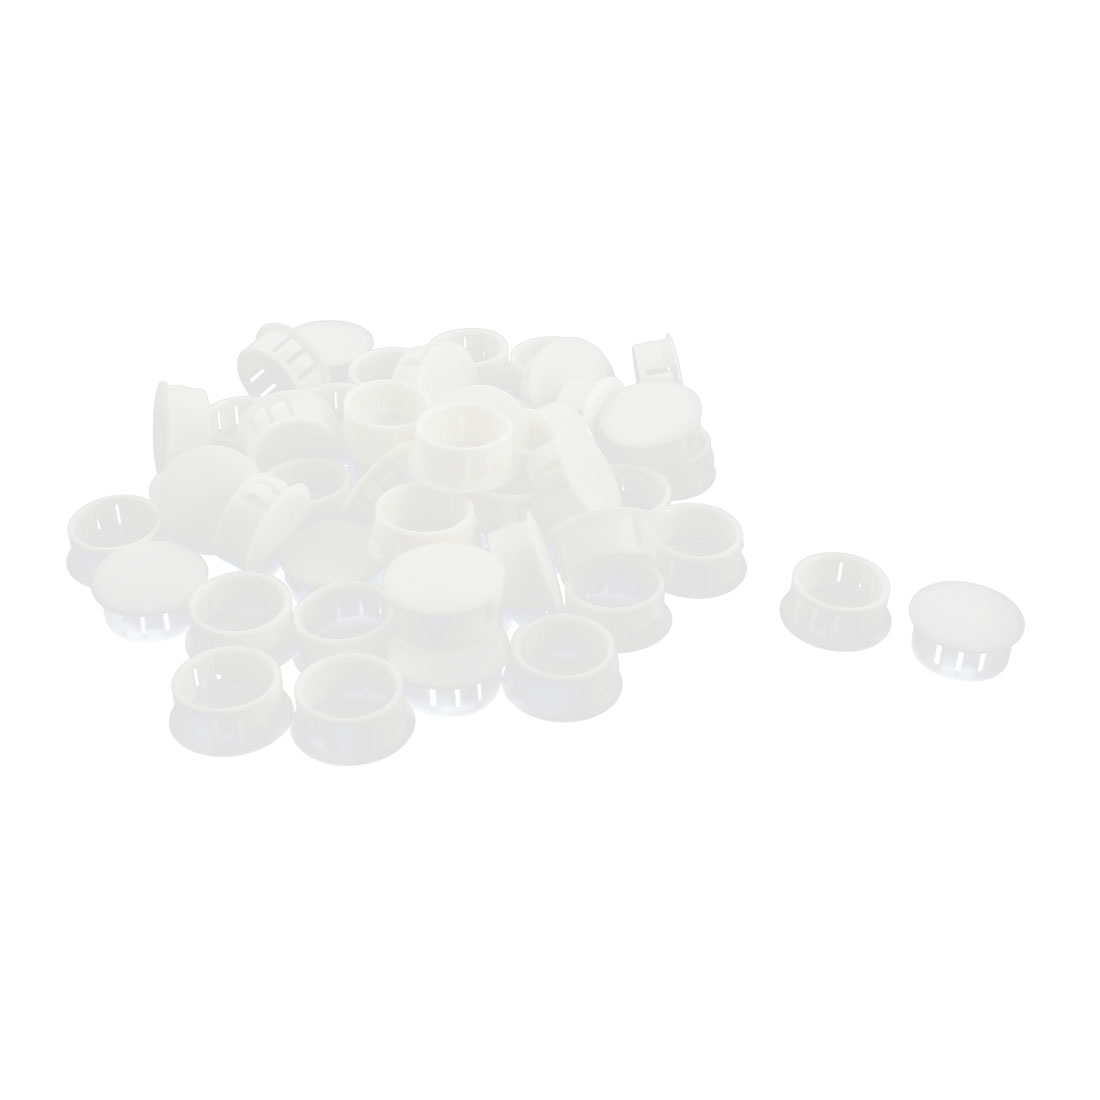 50 Pcs SKT-22 22.1mm Insulated White Plastic Snap in Mounting Locking Hole Harness Fastener Cover